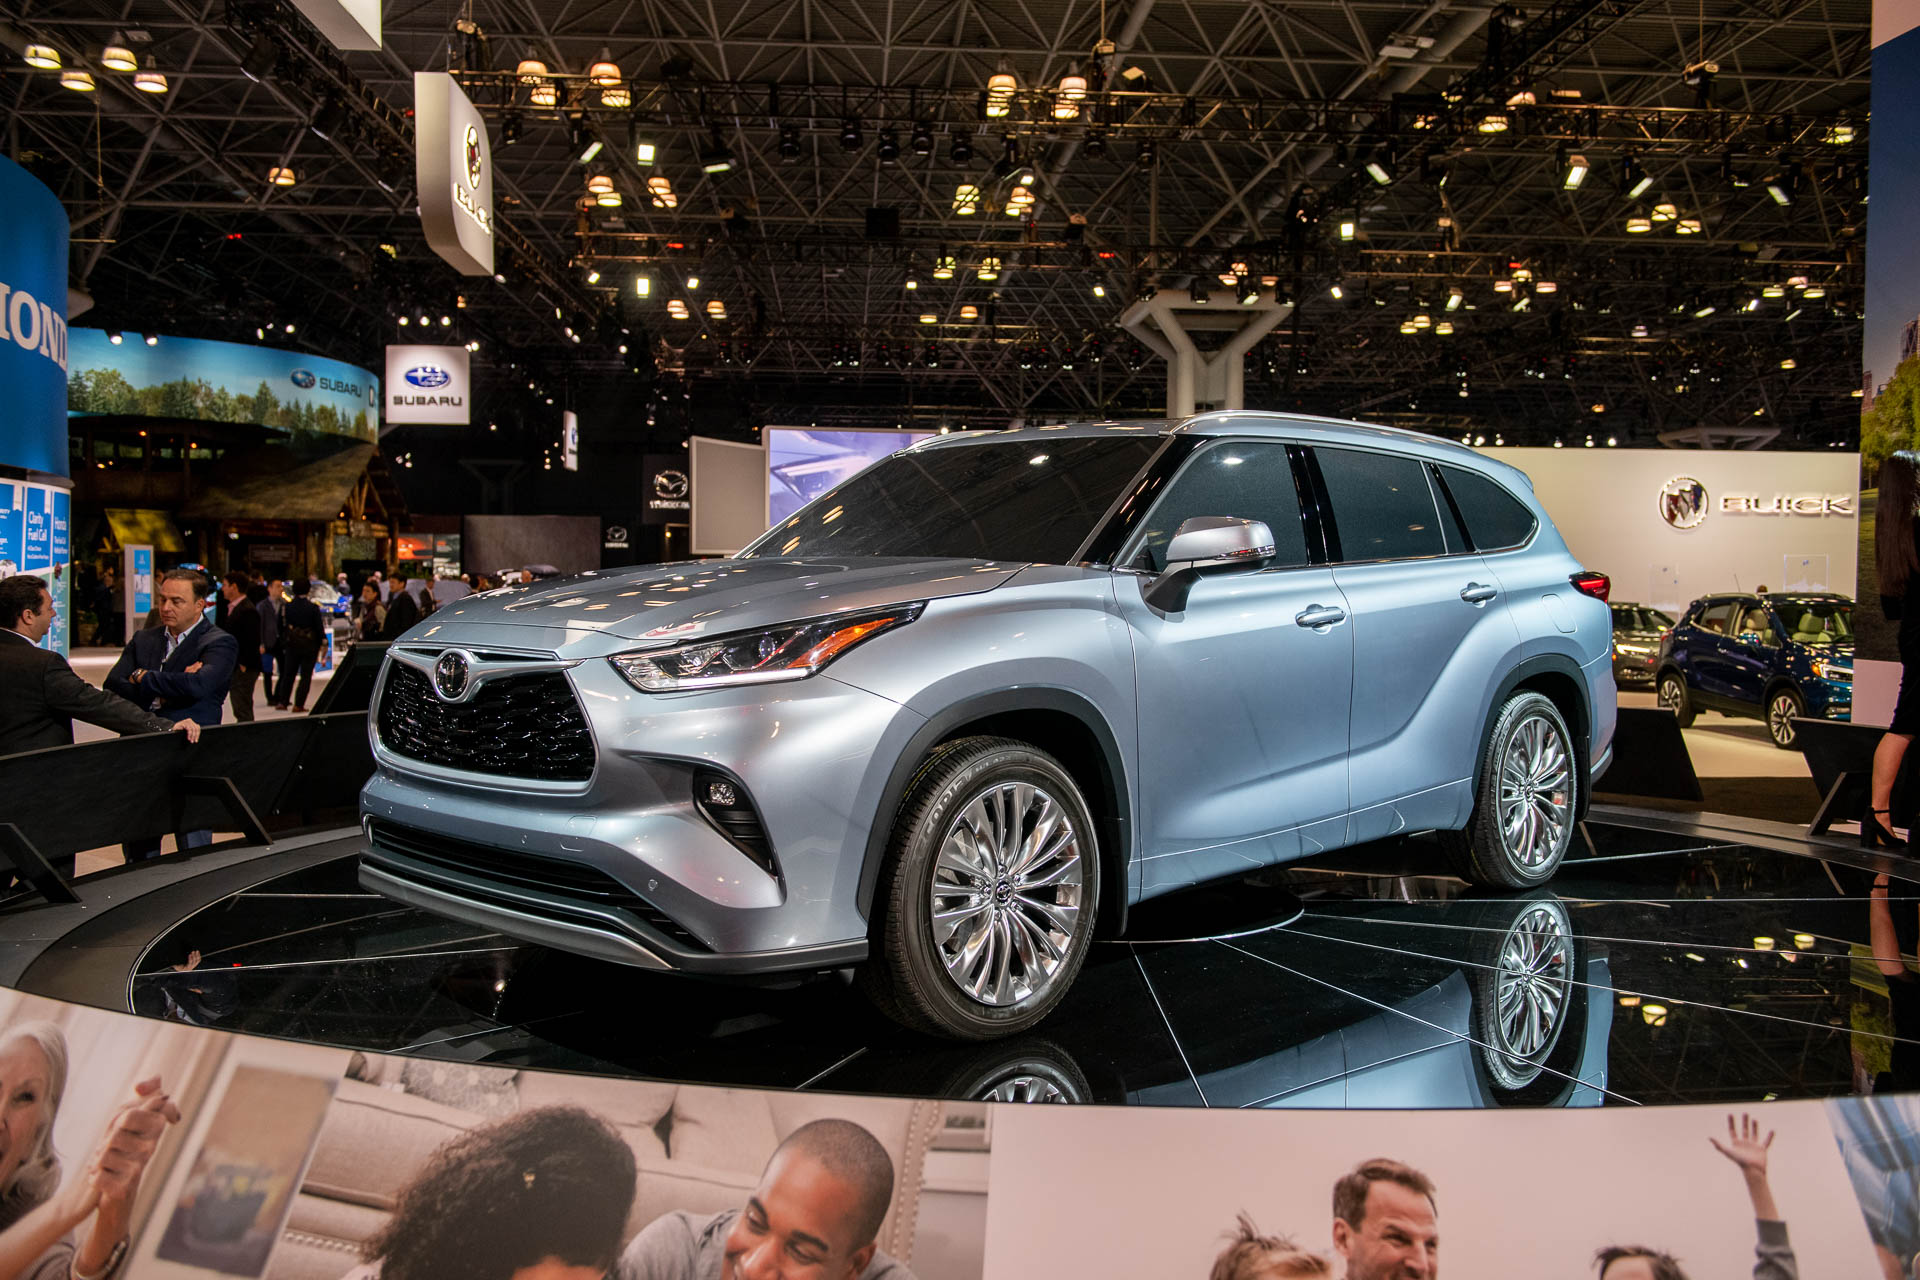 2020 Toyota Highlander Unveiled Crossover Suv Juices Up With Thrifty 34 Mpg Hybrid